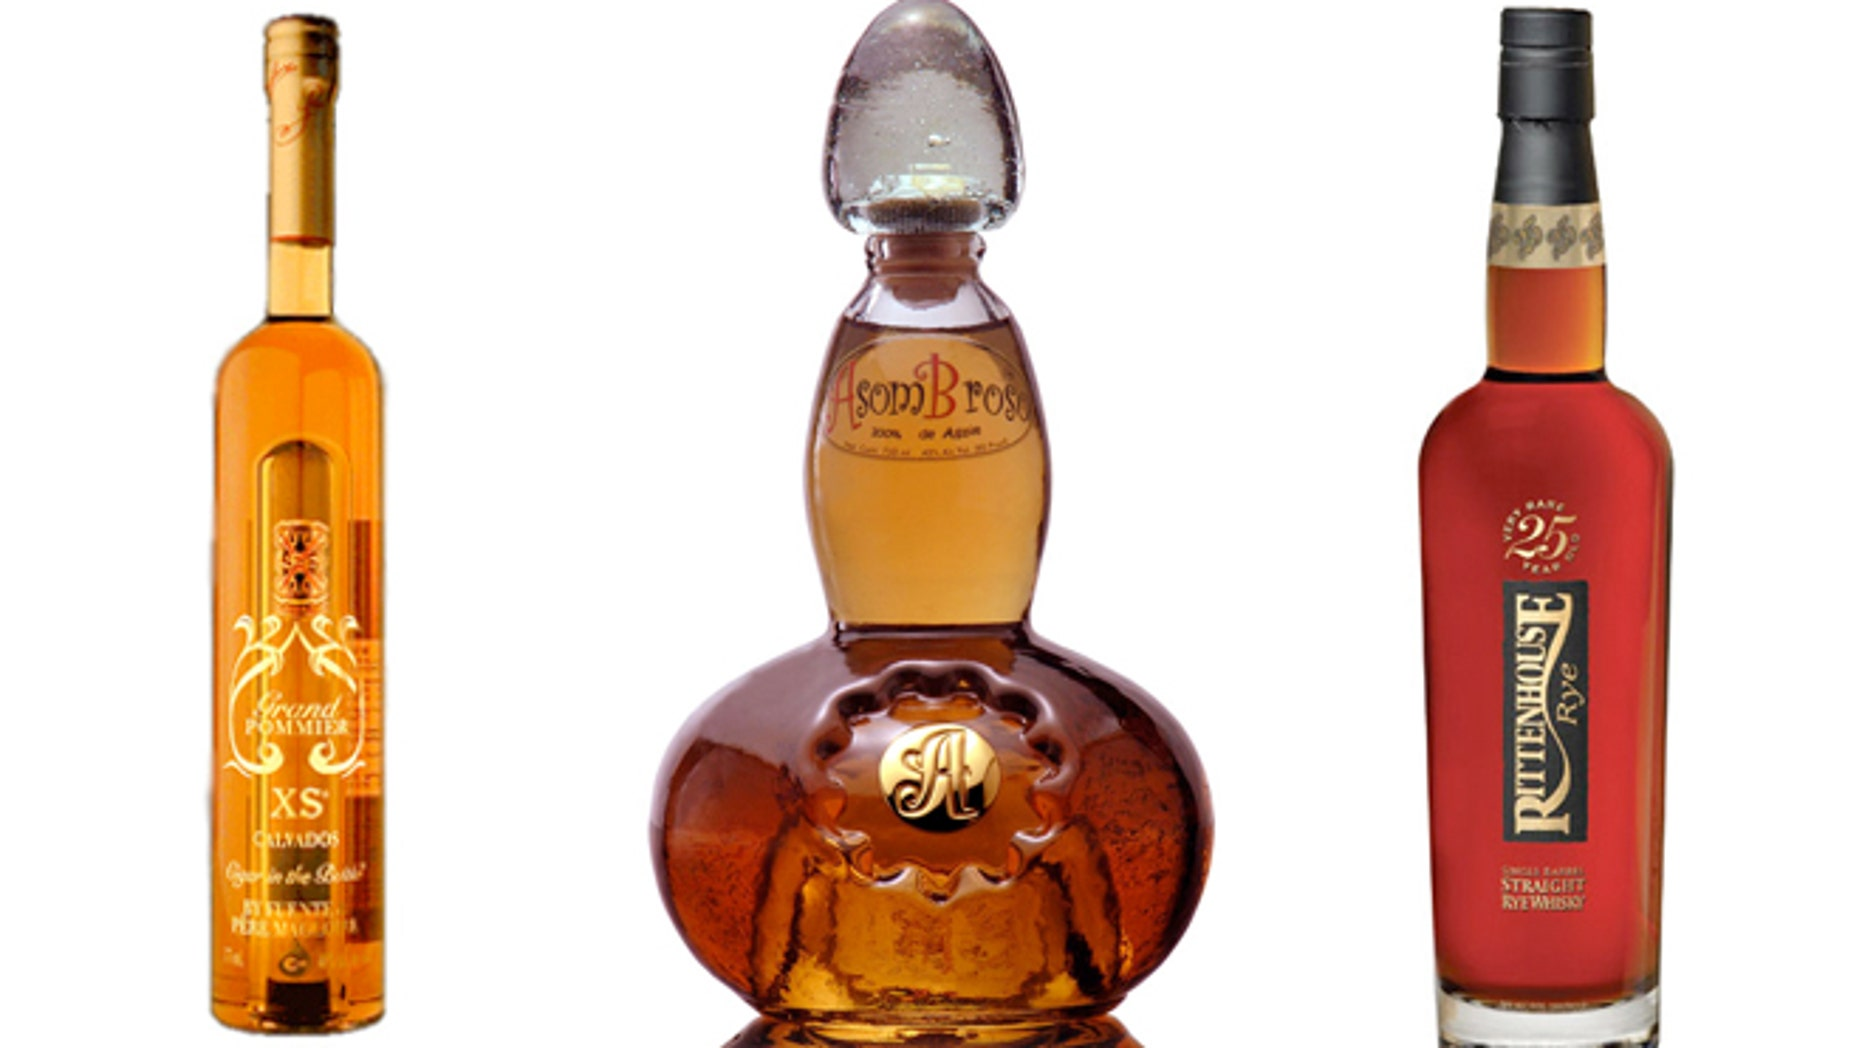 Pere Magloire Grand Pommier XS Calvados, AsomBroso 11-Year-Old Anejo Tequila and Rittenhouse Very Rare 25-Year-Old Single Barrel Rye are among the best liquor money can buy.